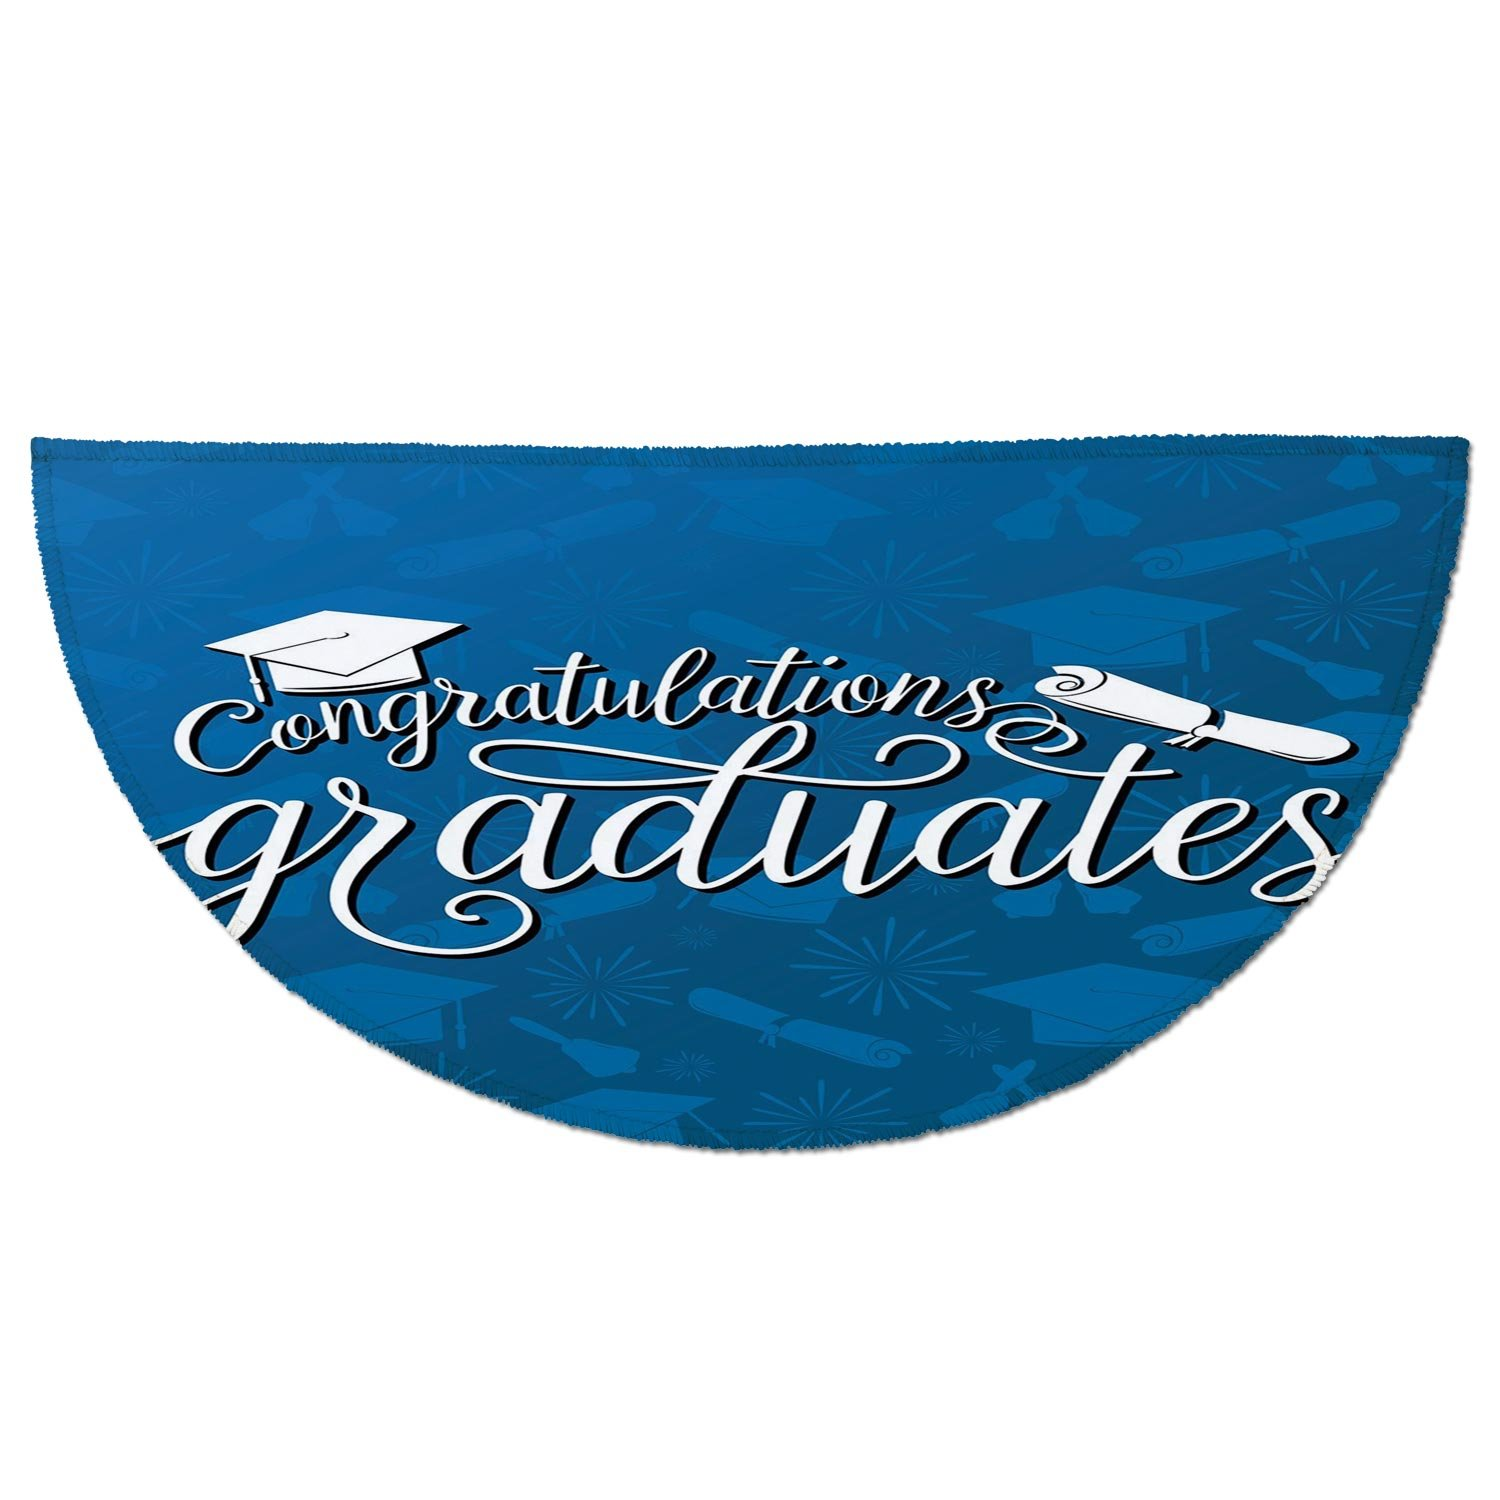 Half Round Door Mat Entrance Rug Floor Mats,Graduation Decor,College Celebration Ceremony Certificate Diploma Square Academic Cap,Blue and White,Garage Entry Carpet Decor for House Patio Grass Water